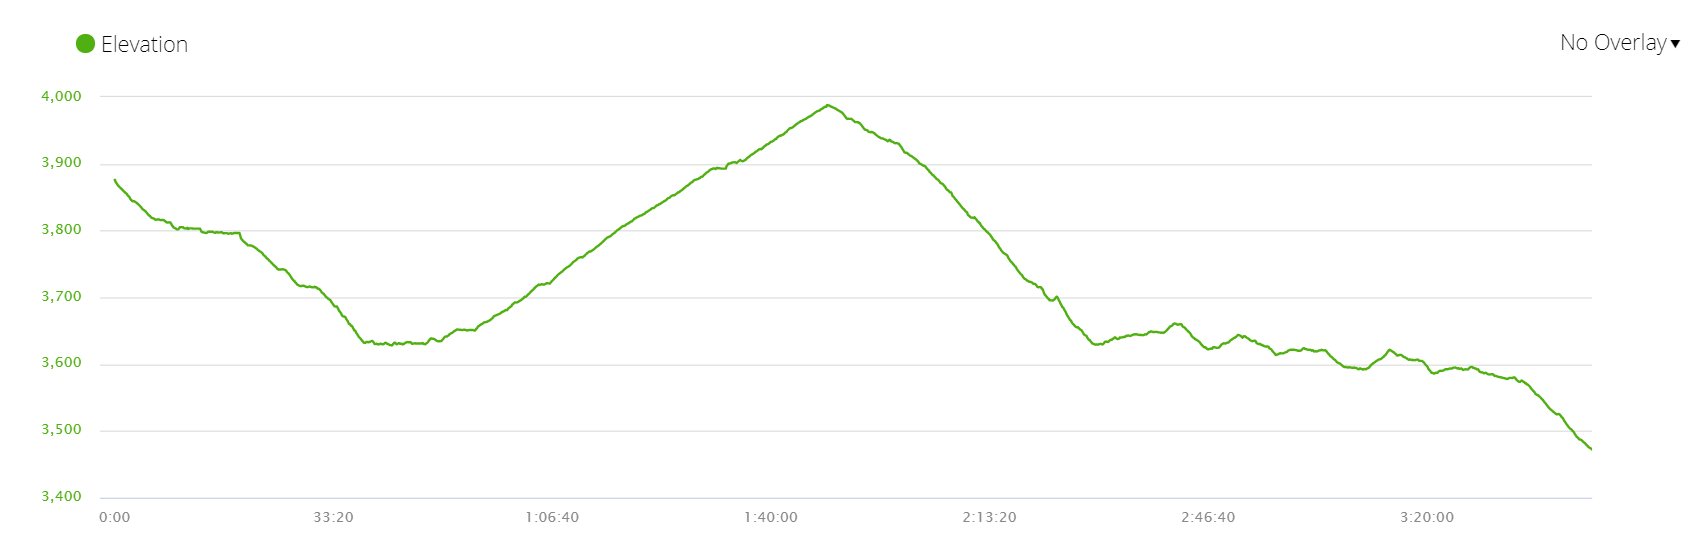 Elevation profile of the route from Photse to Namche Bazar